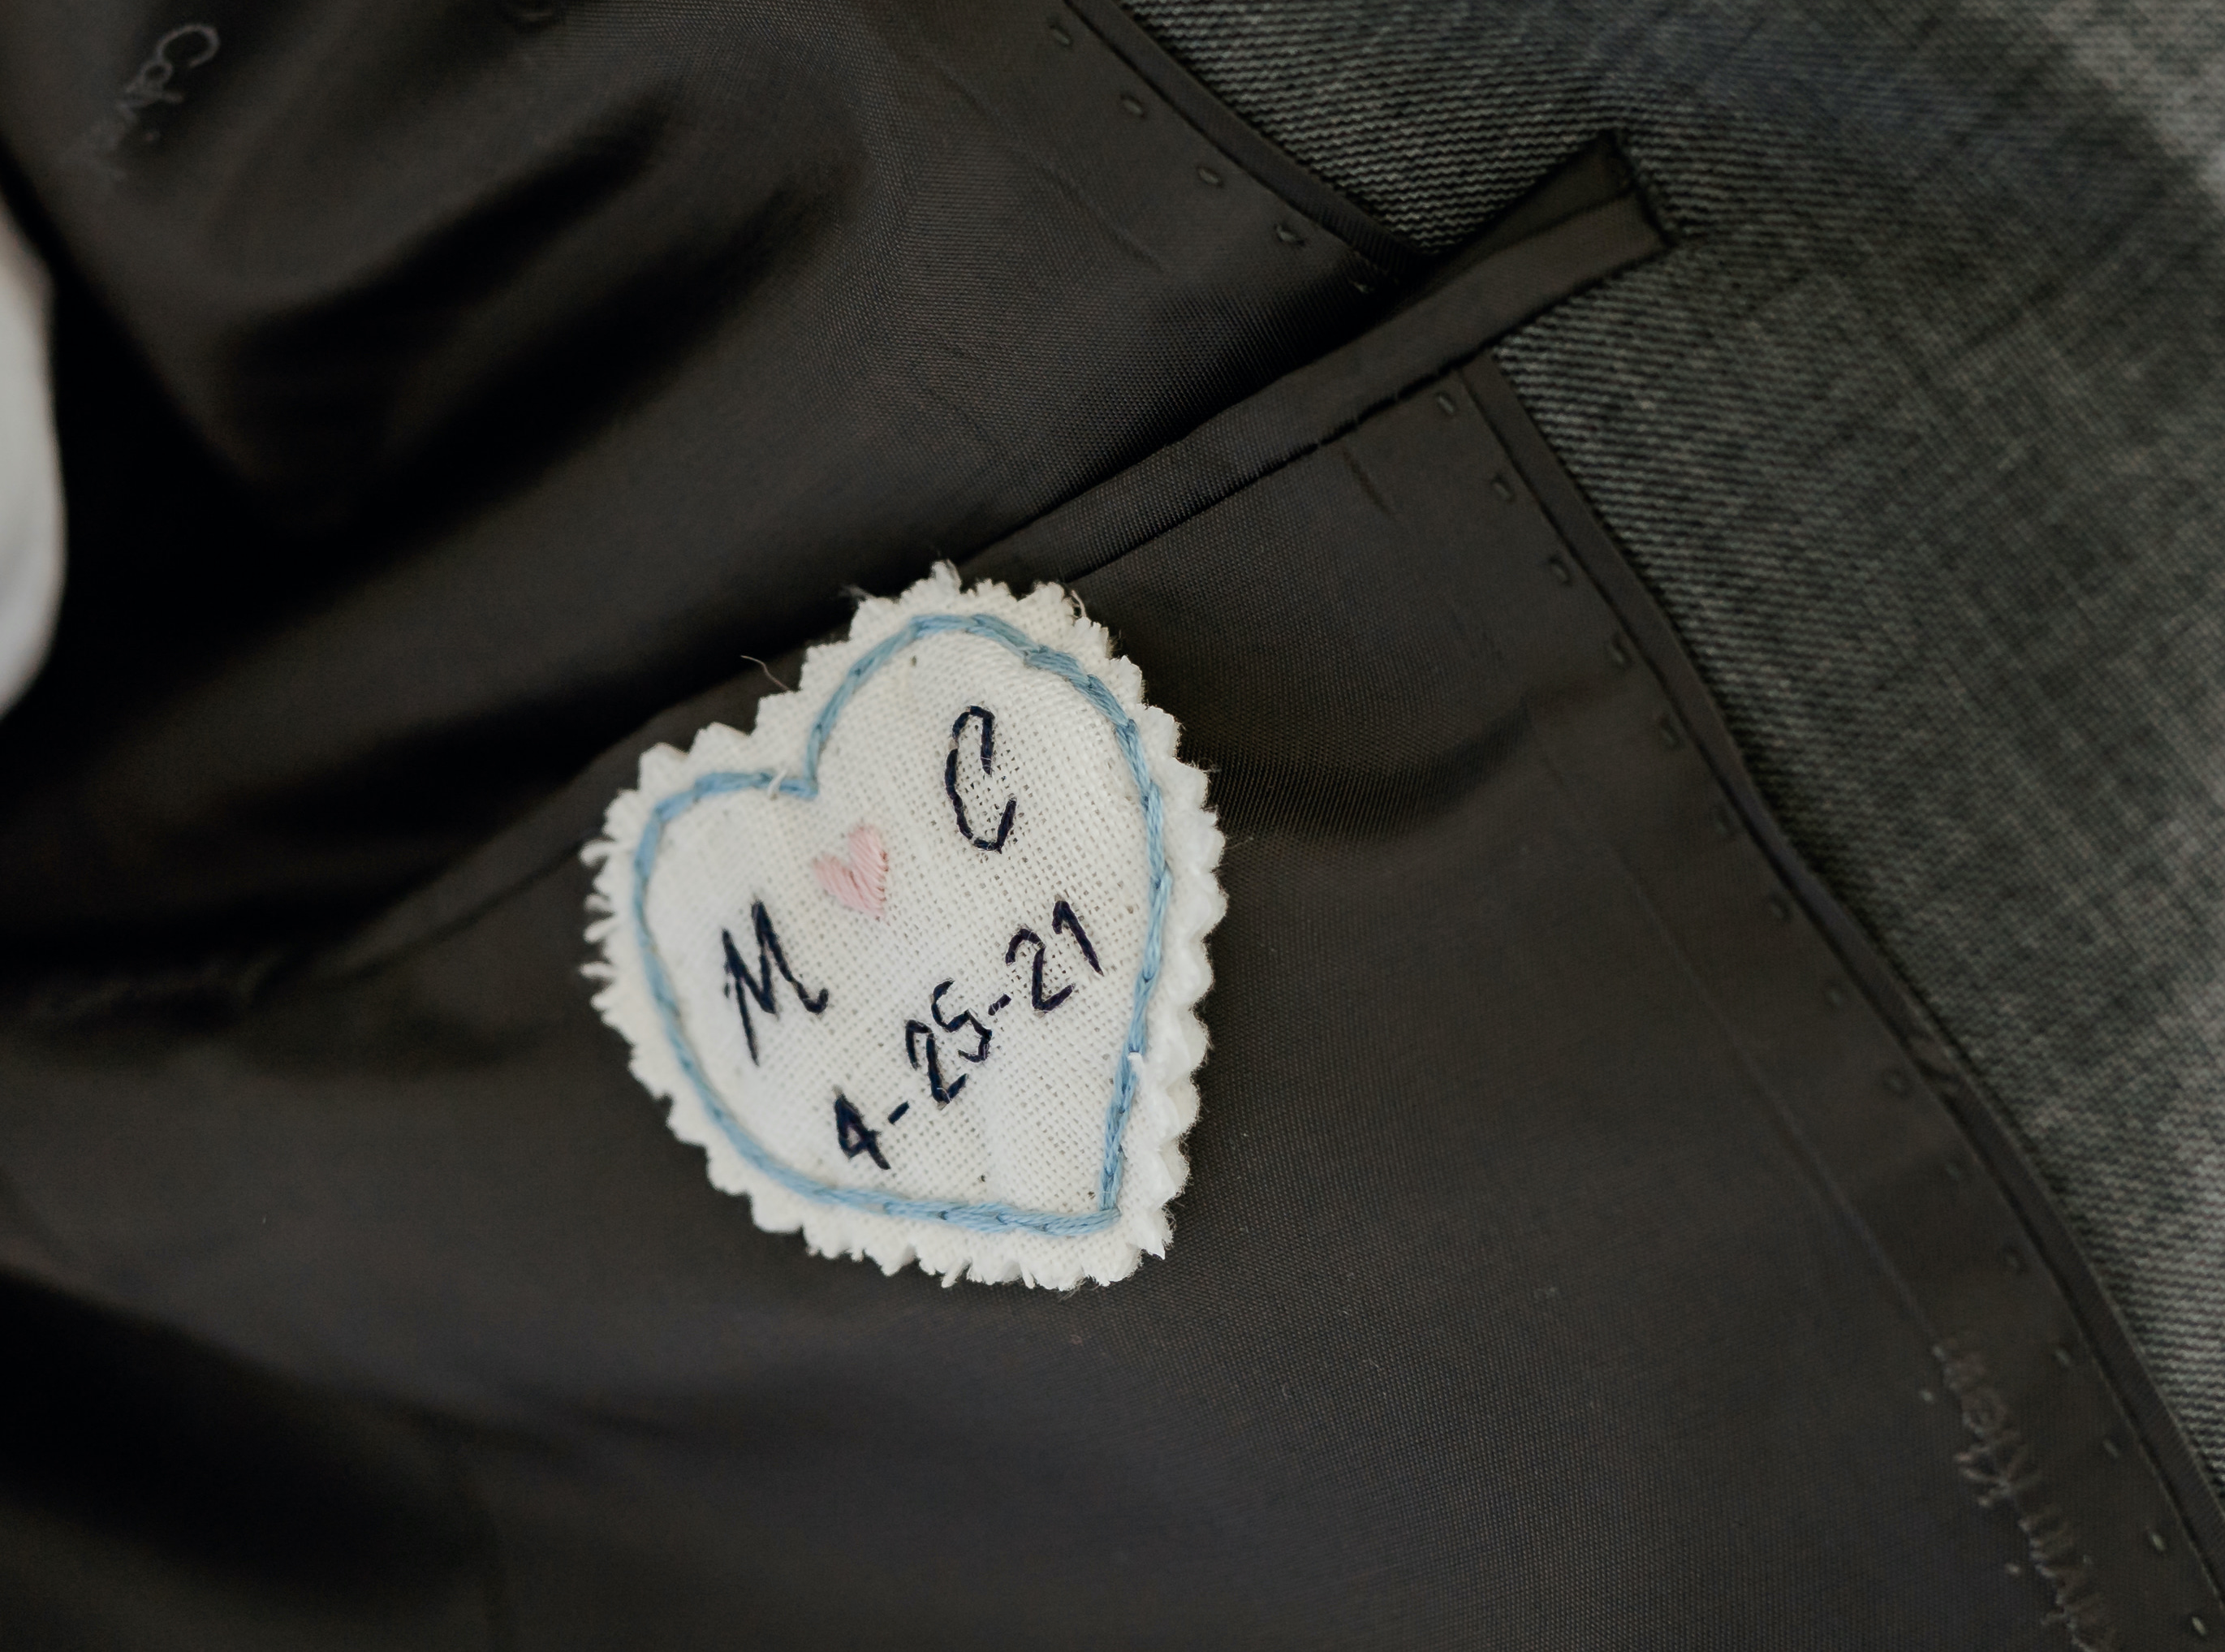 An embroidered heart inside the groom's suitcoat.